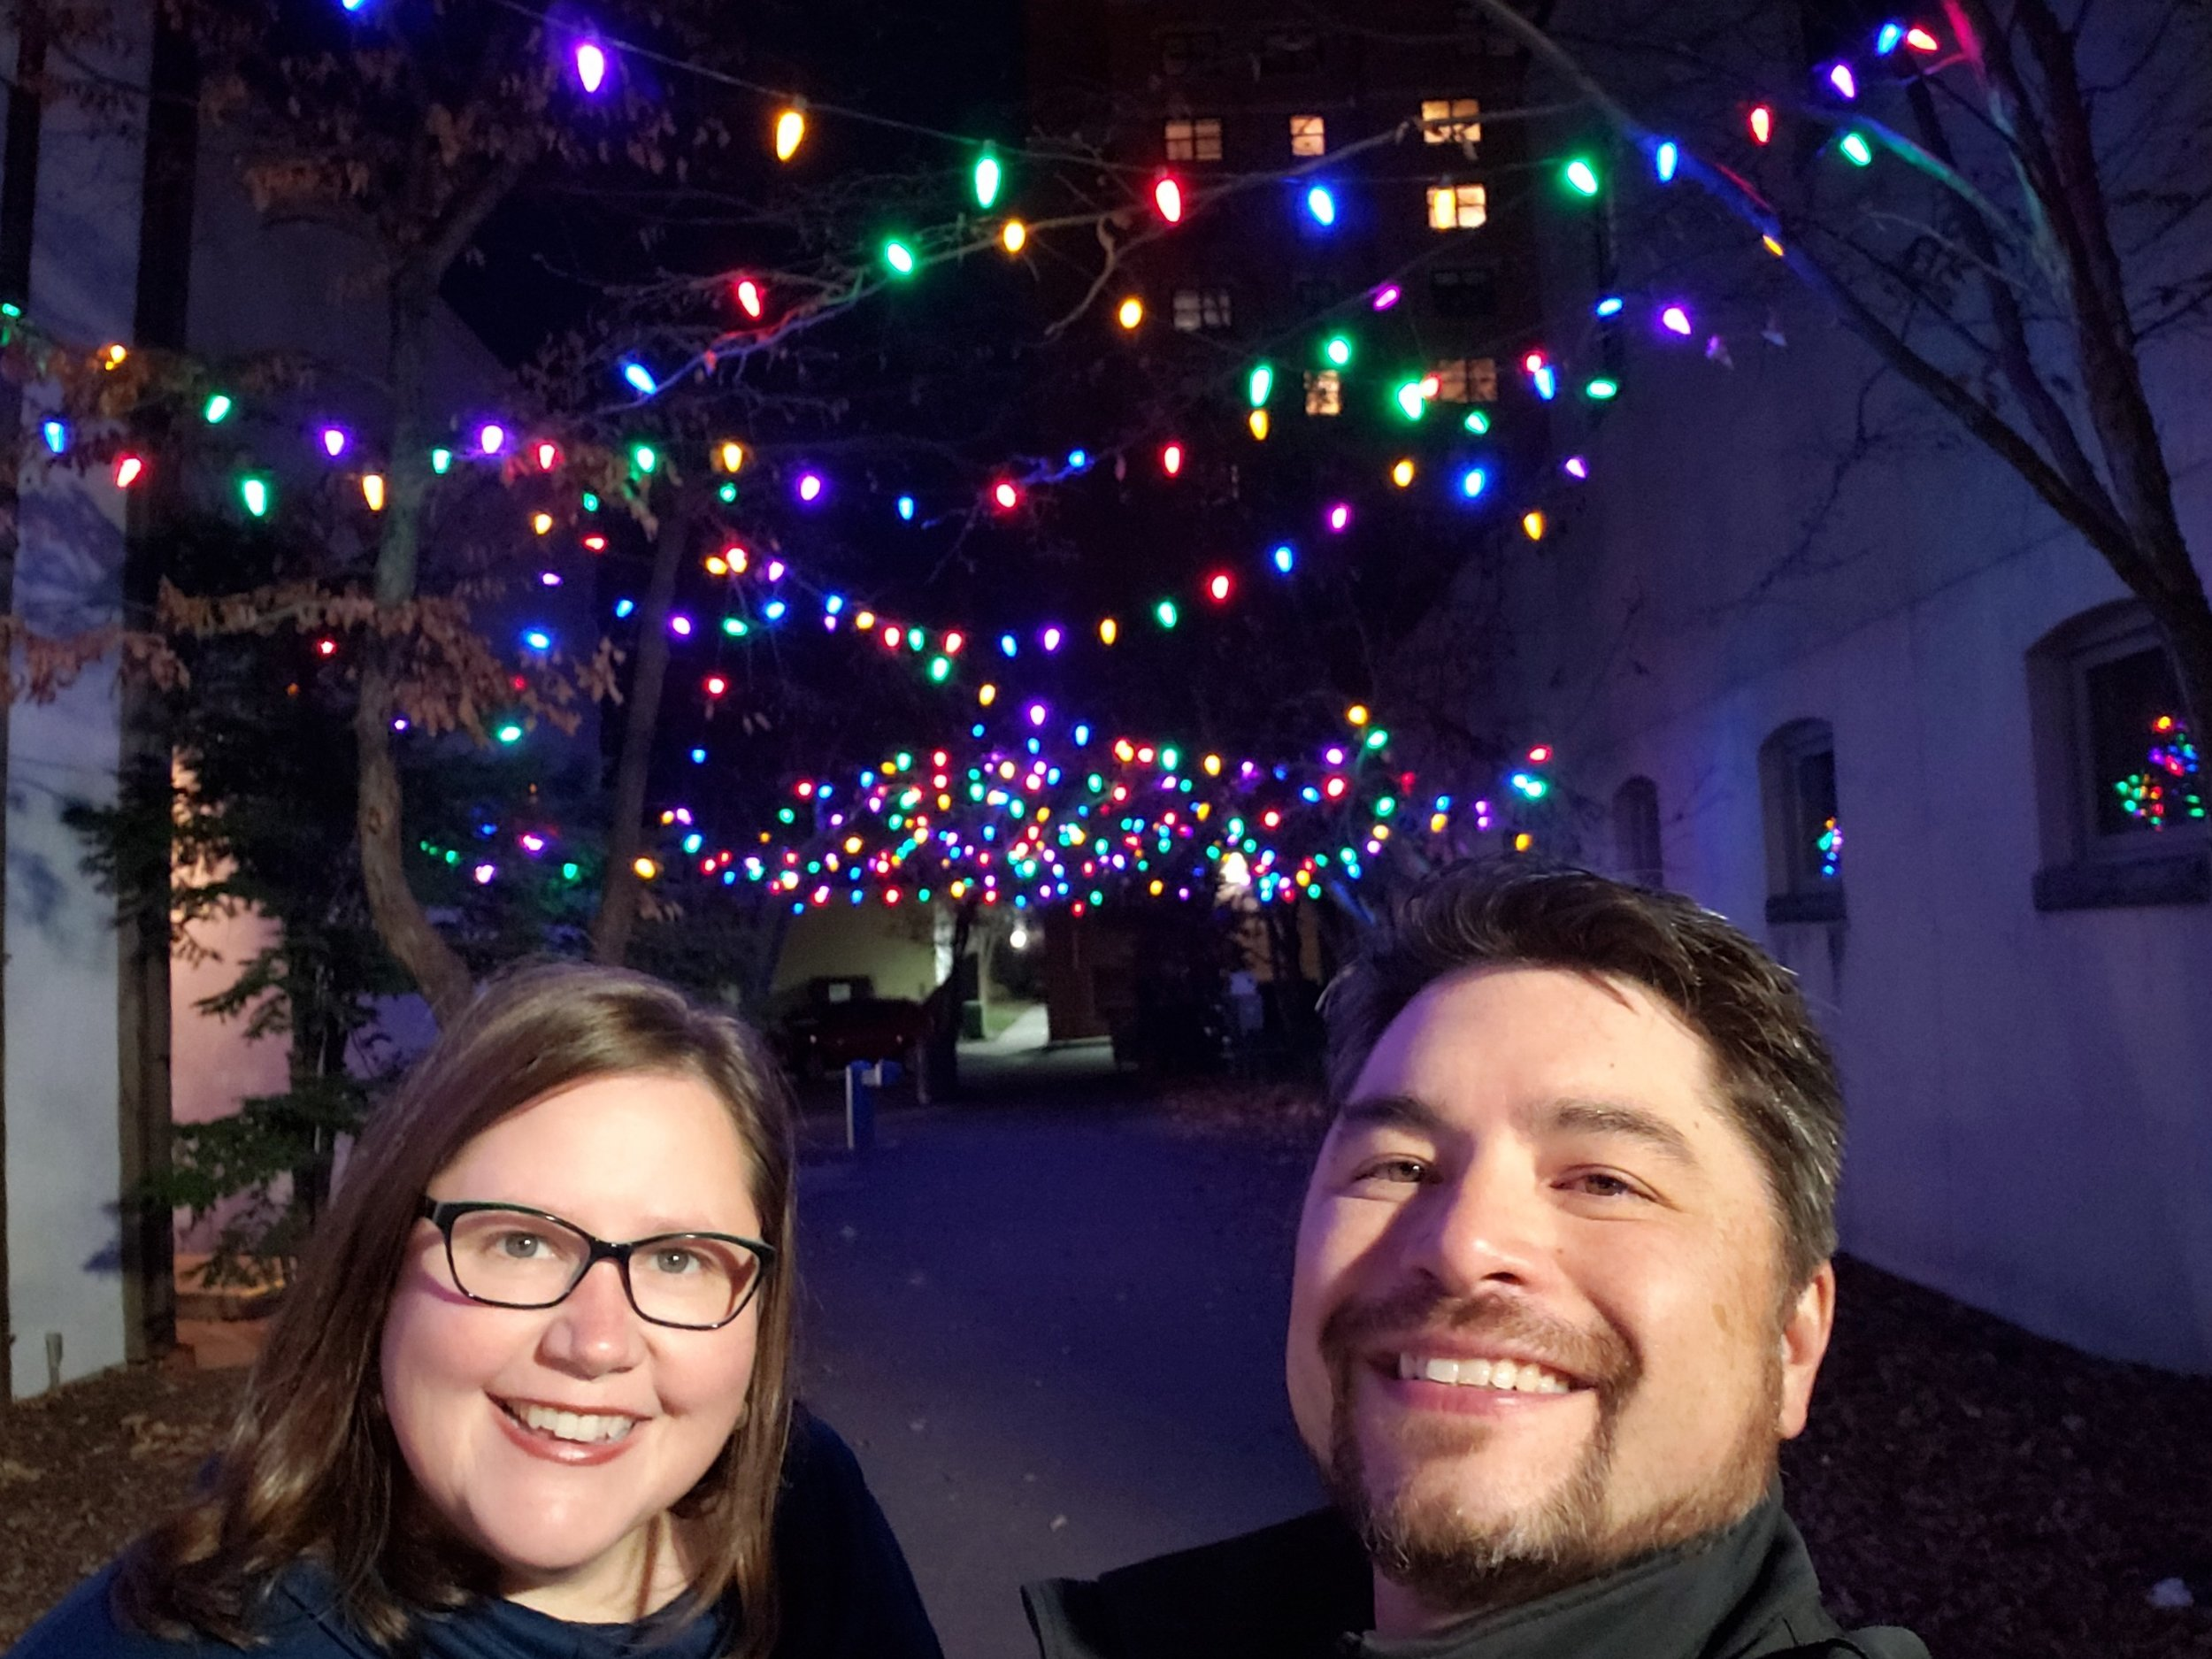 Megan and her husband Kent out enjoying the pretty lights in a courtyard in Red Wing, MN